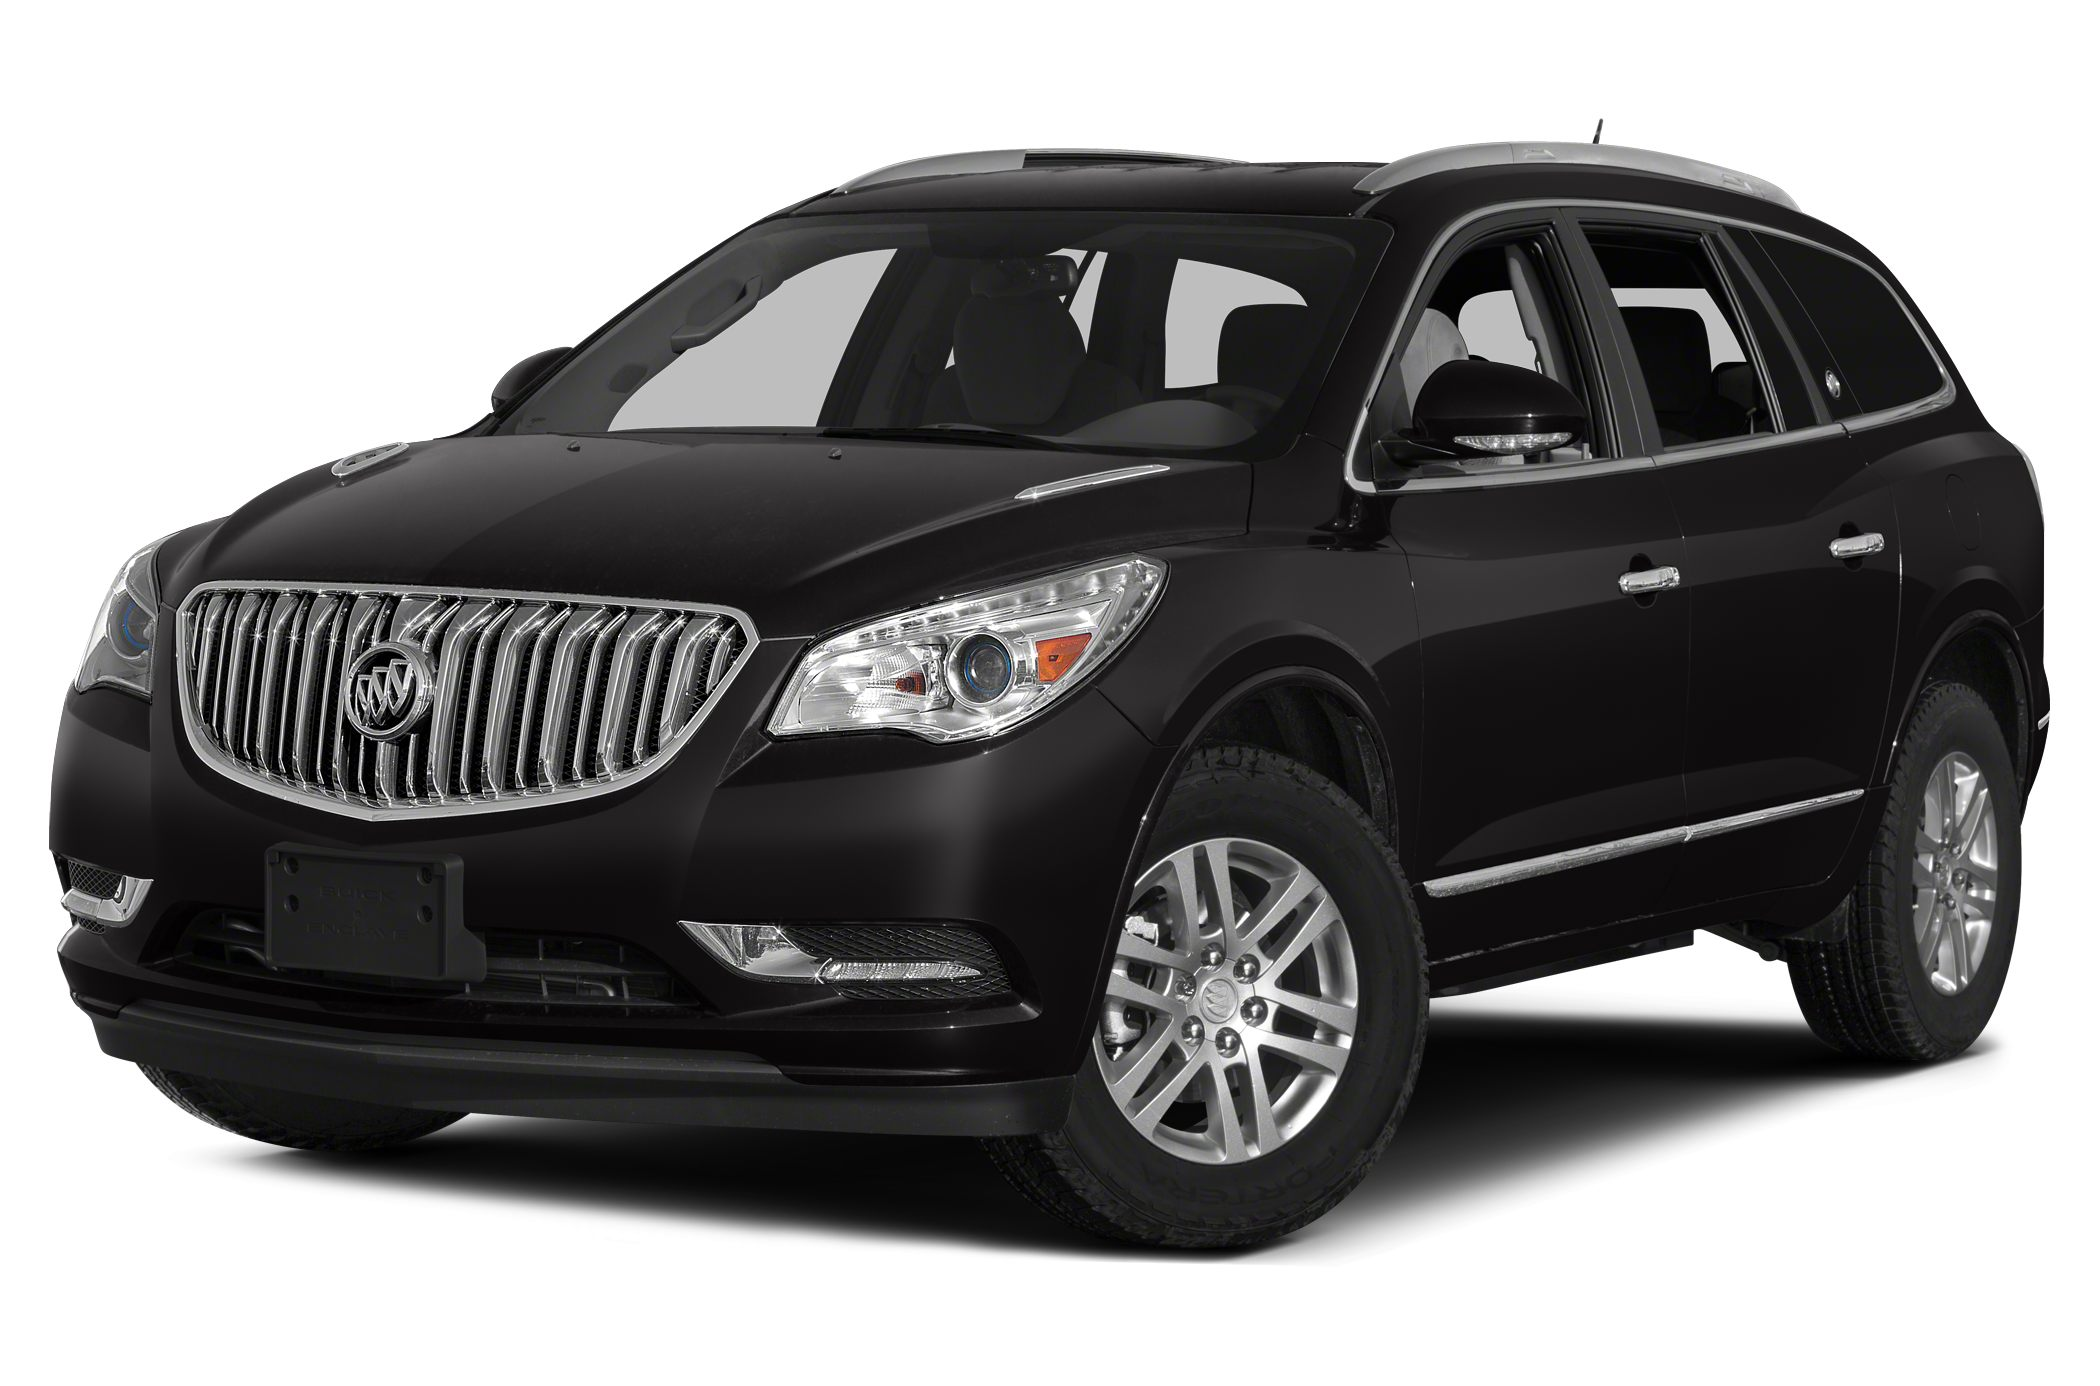 2015 Buick Enclave Leather SUV for sale in Boerne for $46,585 with 0 miles.